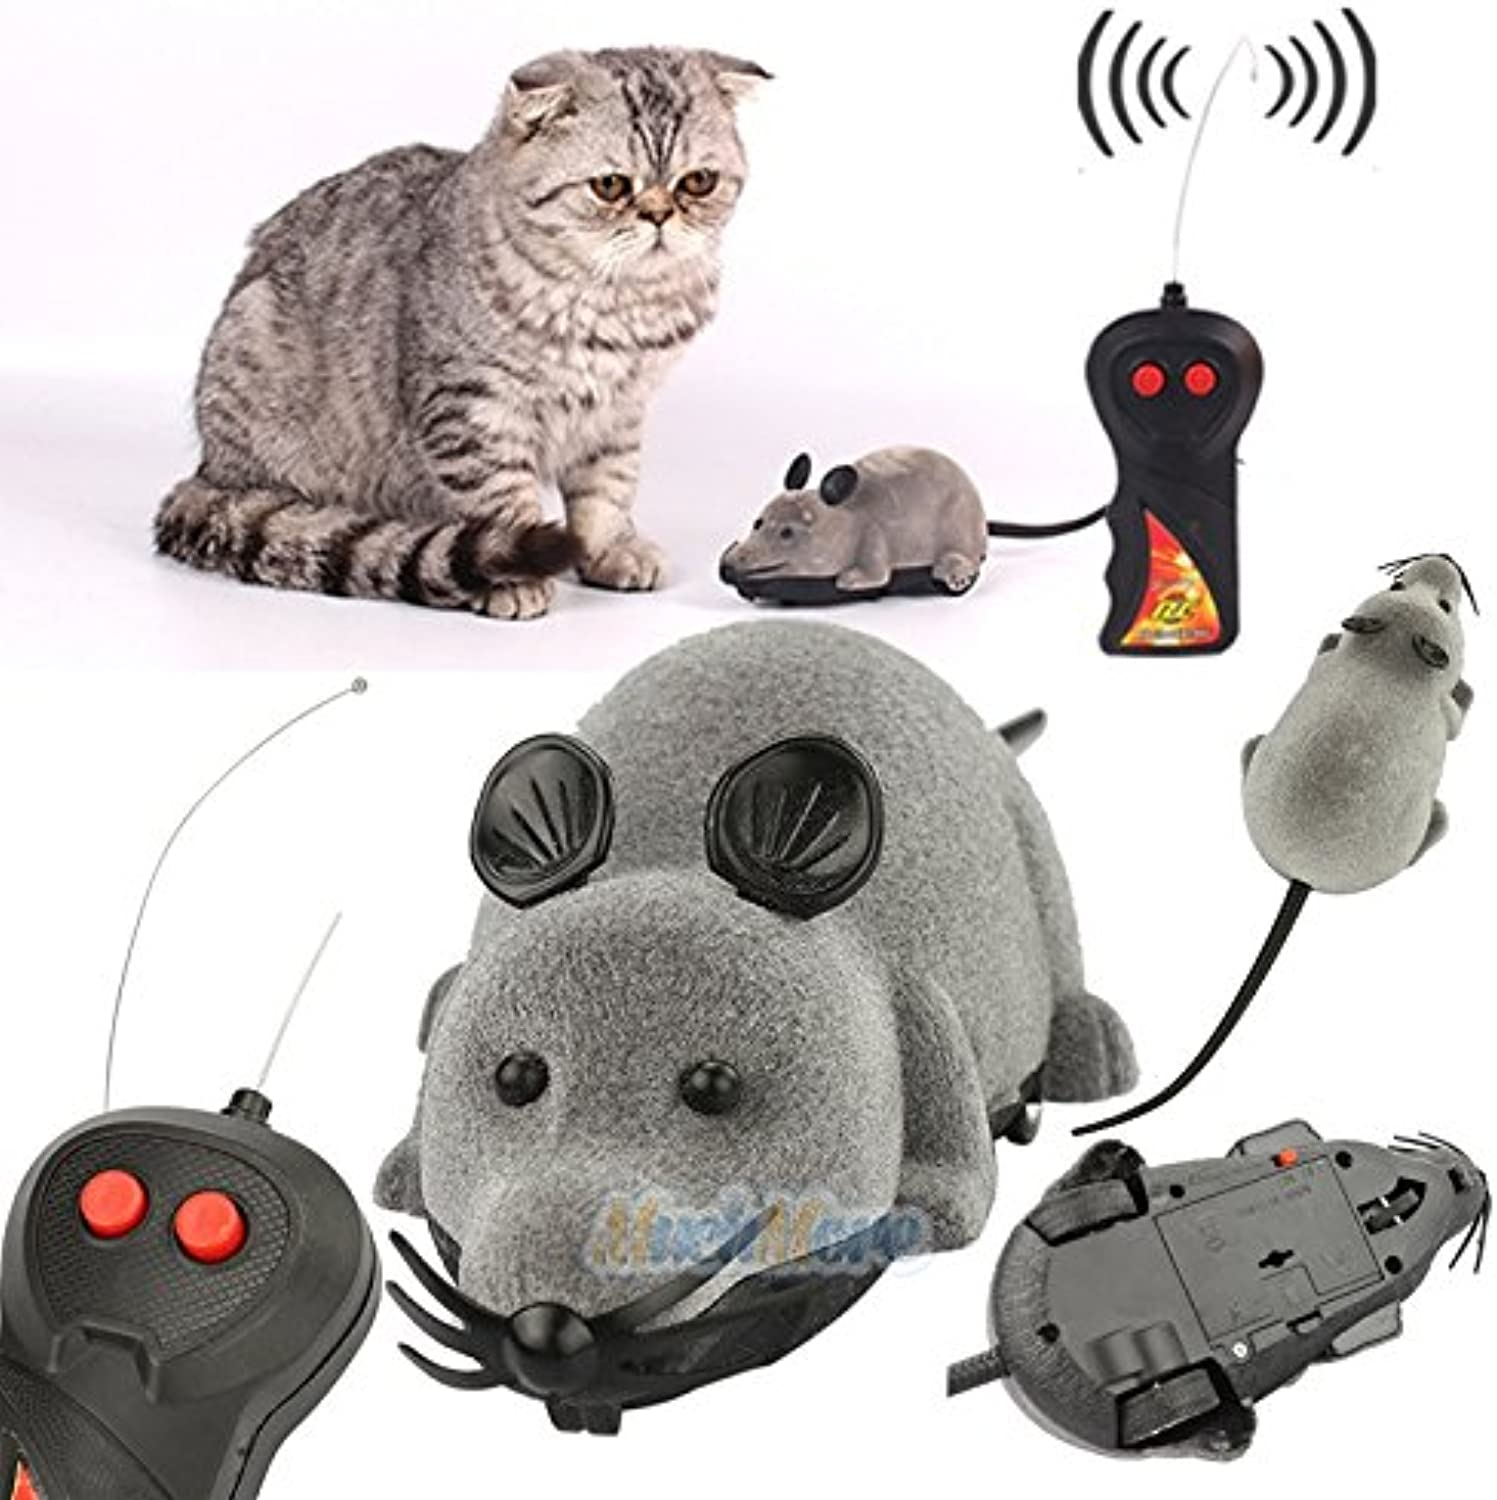 Remote Control RC Rat Mouse Wireless for Cat Dog Pet Funny Toy New by WW shop